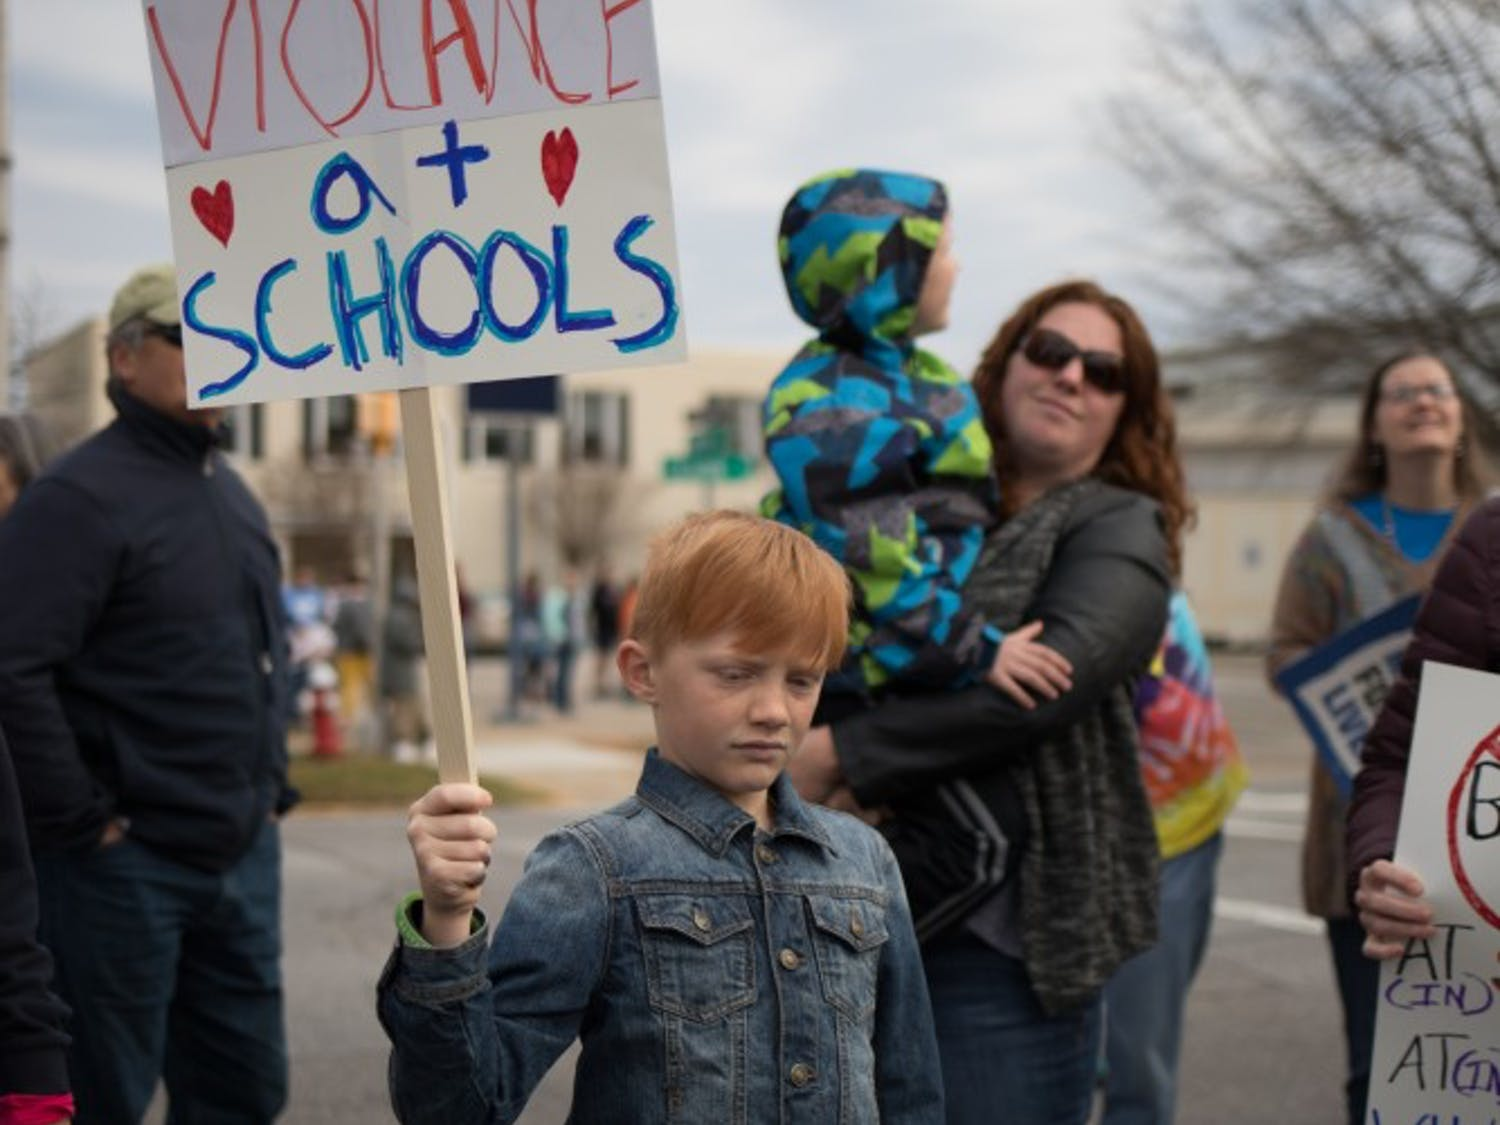 A child holds a sign about gun violence in schools at the March for Our Lives rally in Columbia Nov. 15, 2018.